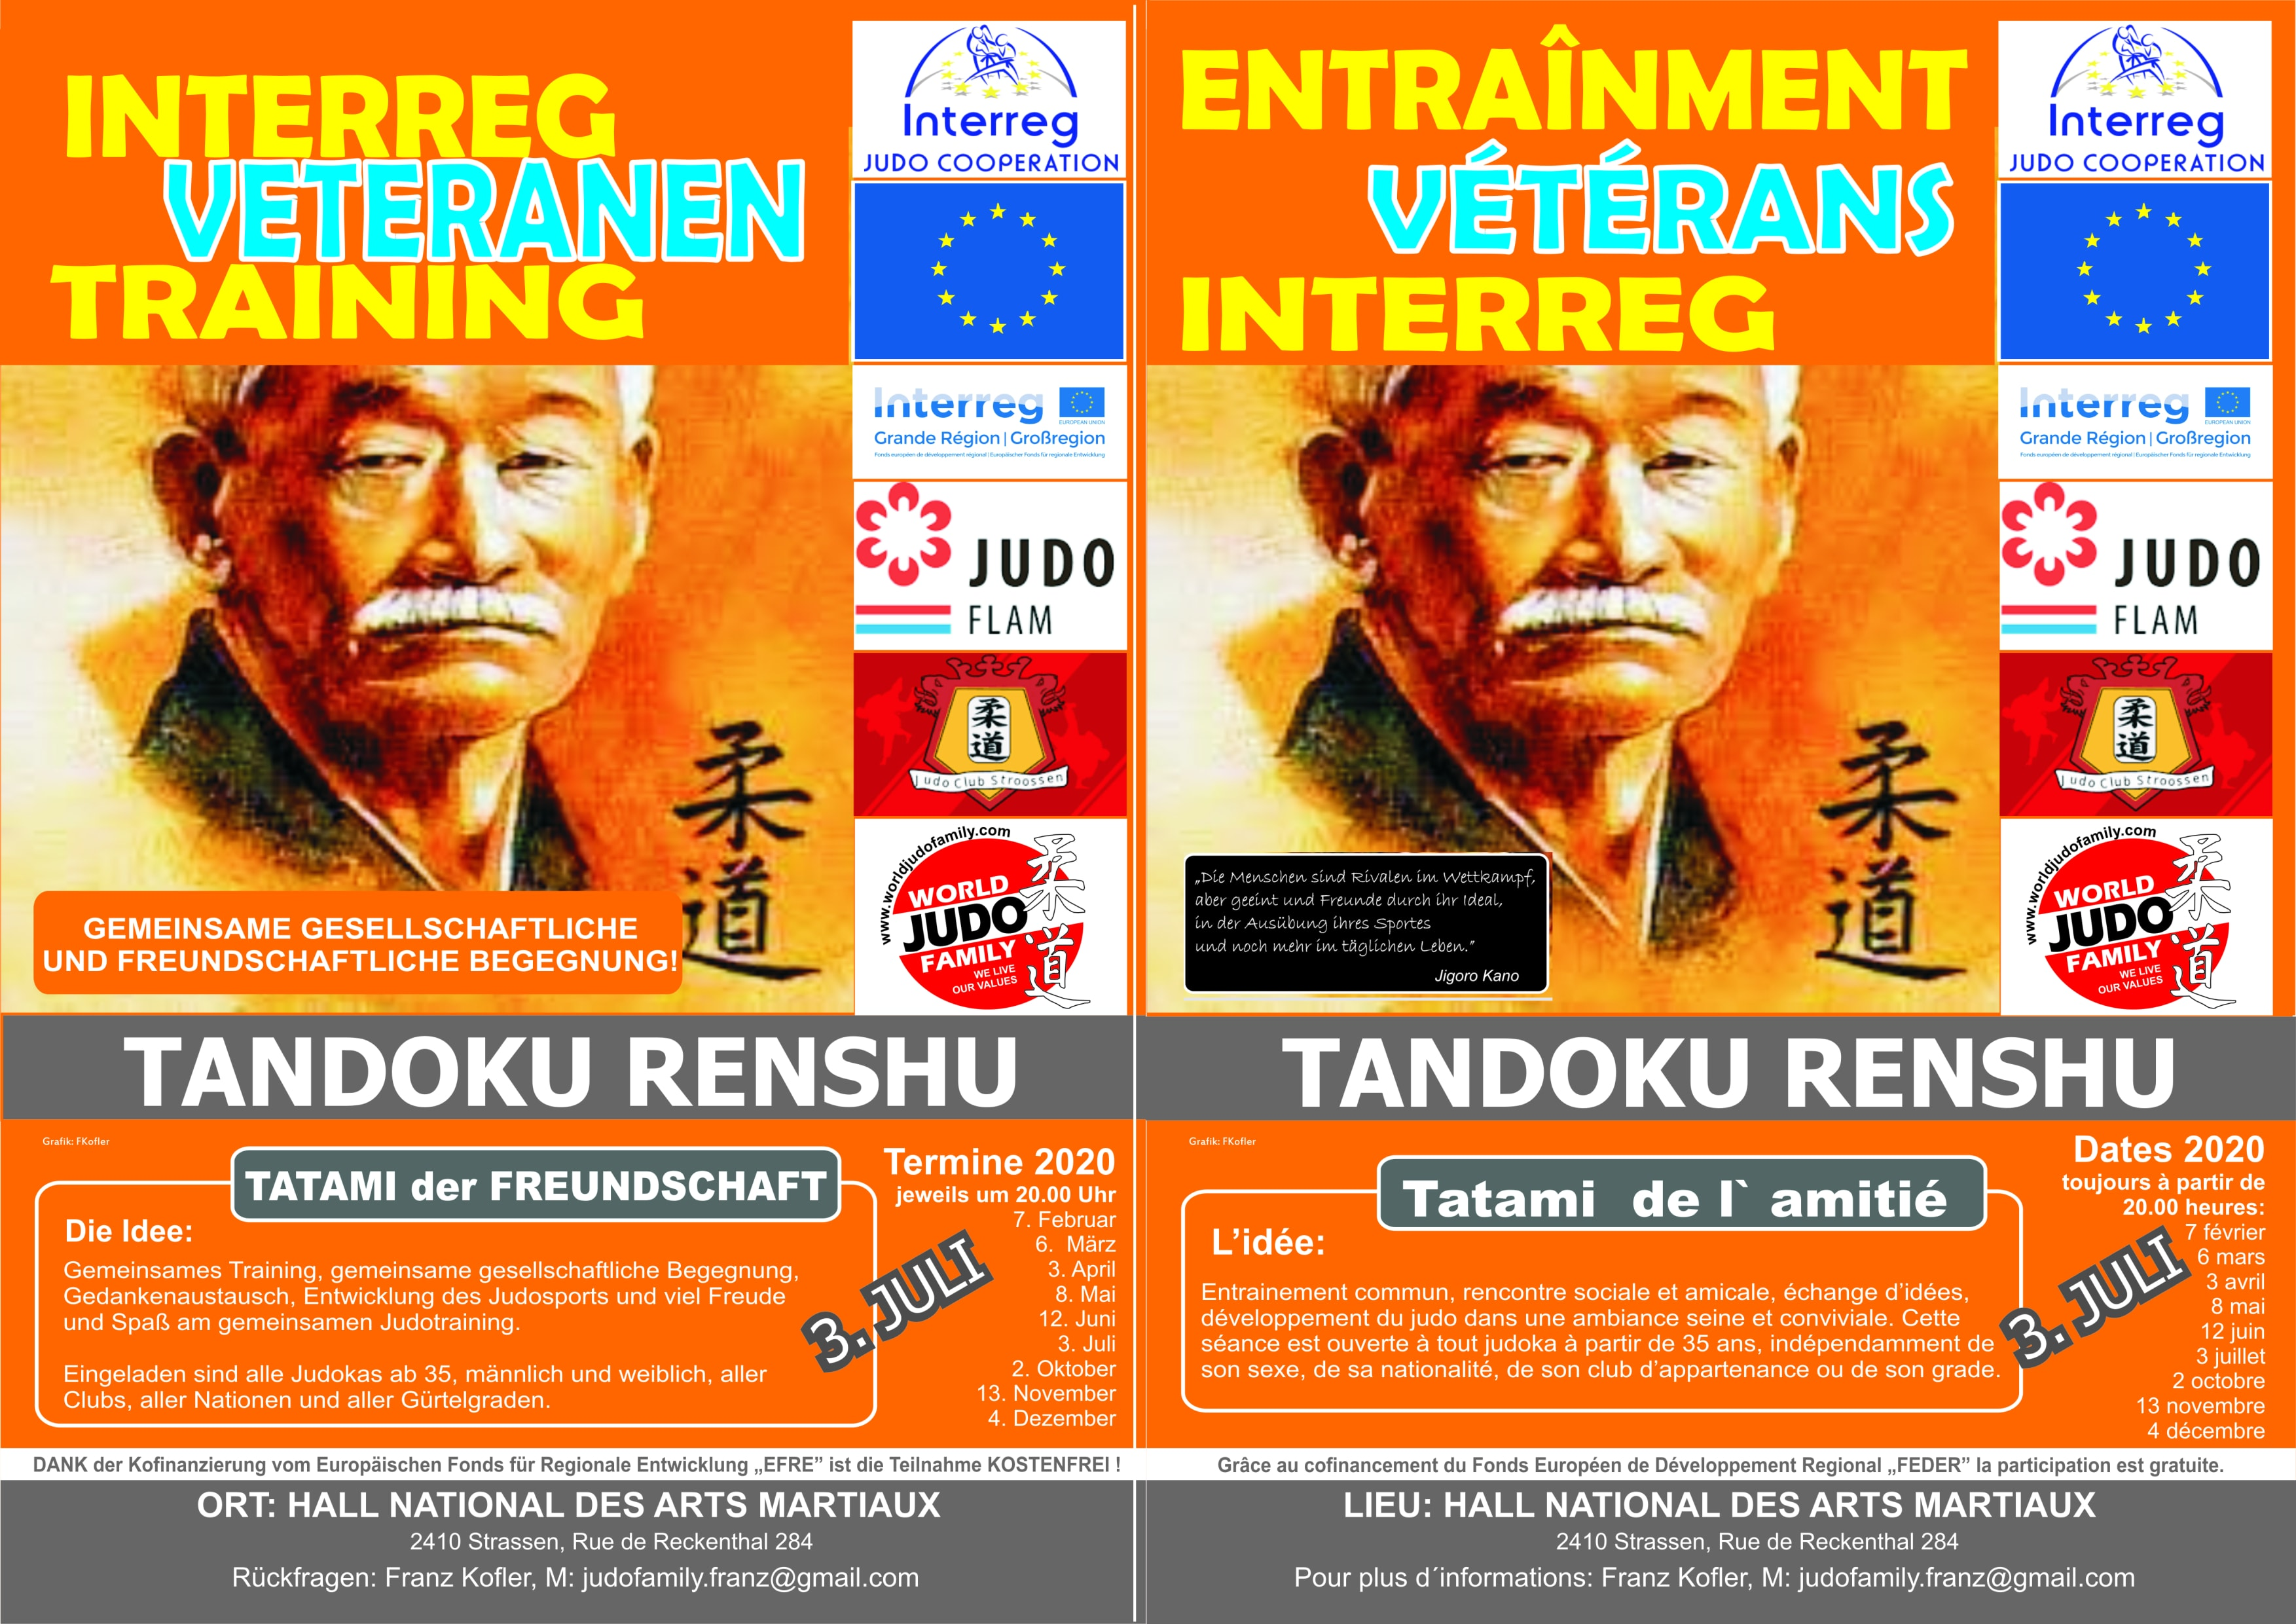 03.07.2020 - Interreg Judo Veteranen Training